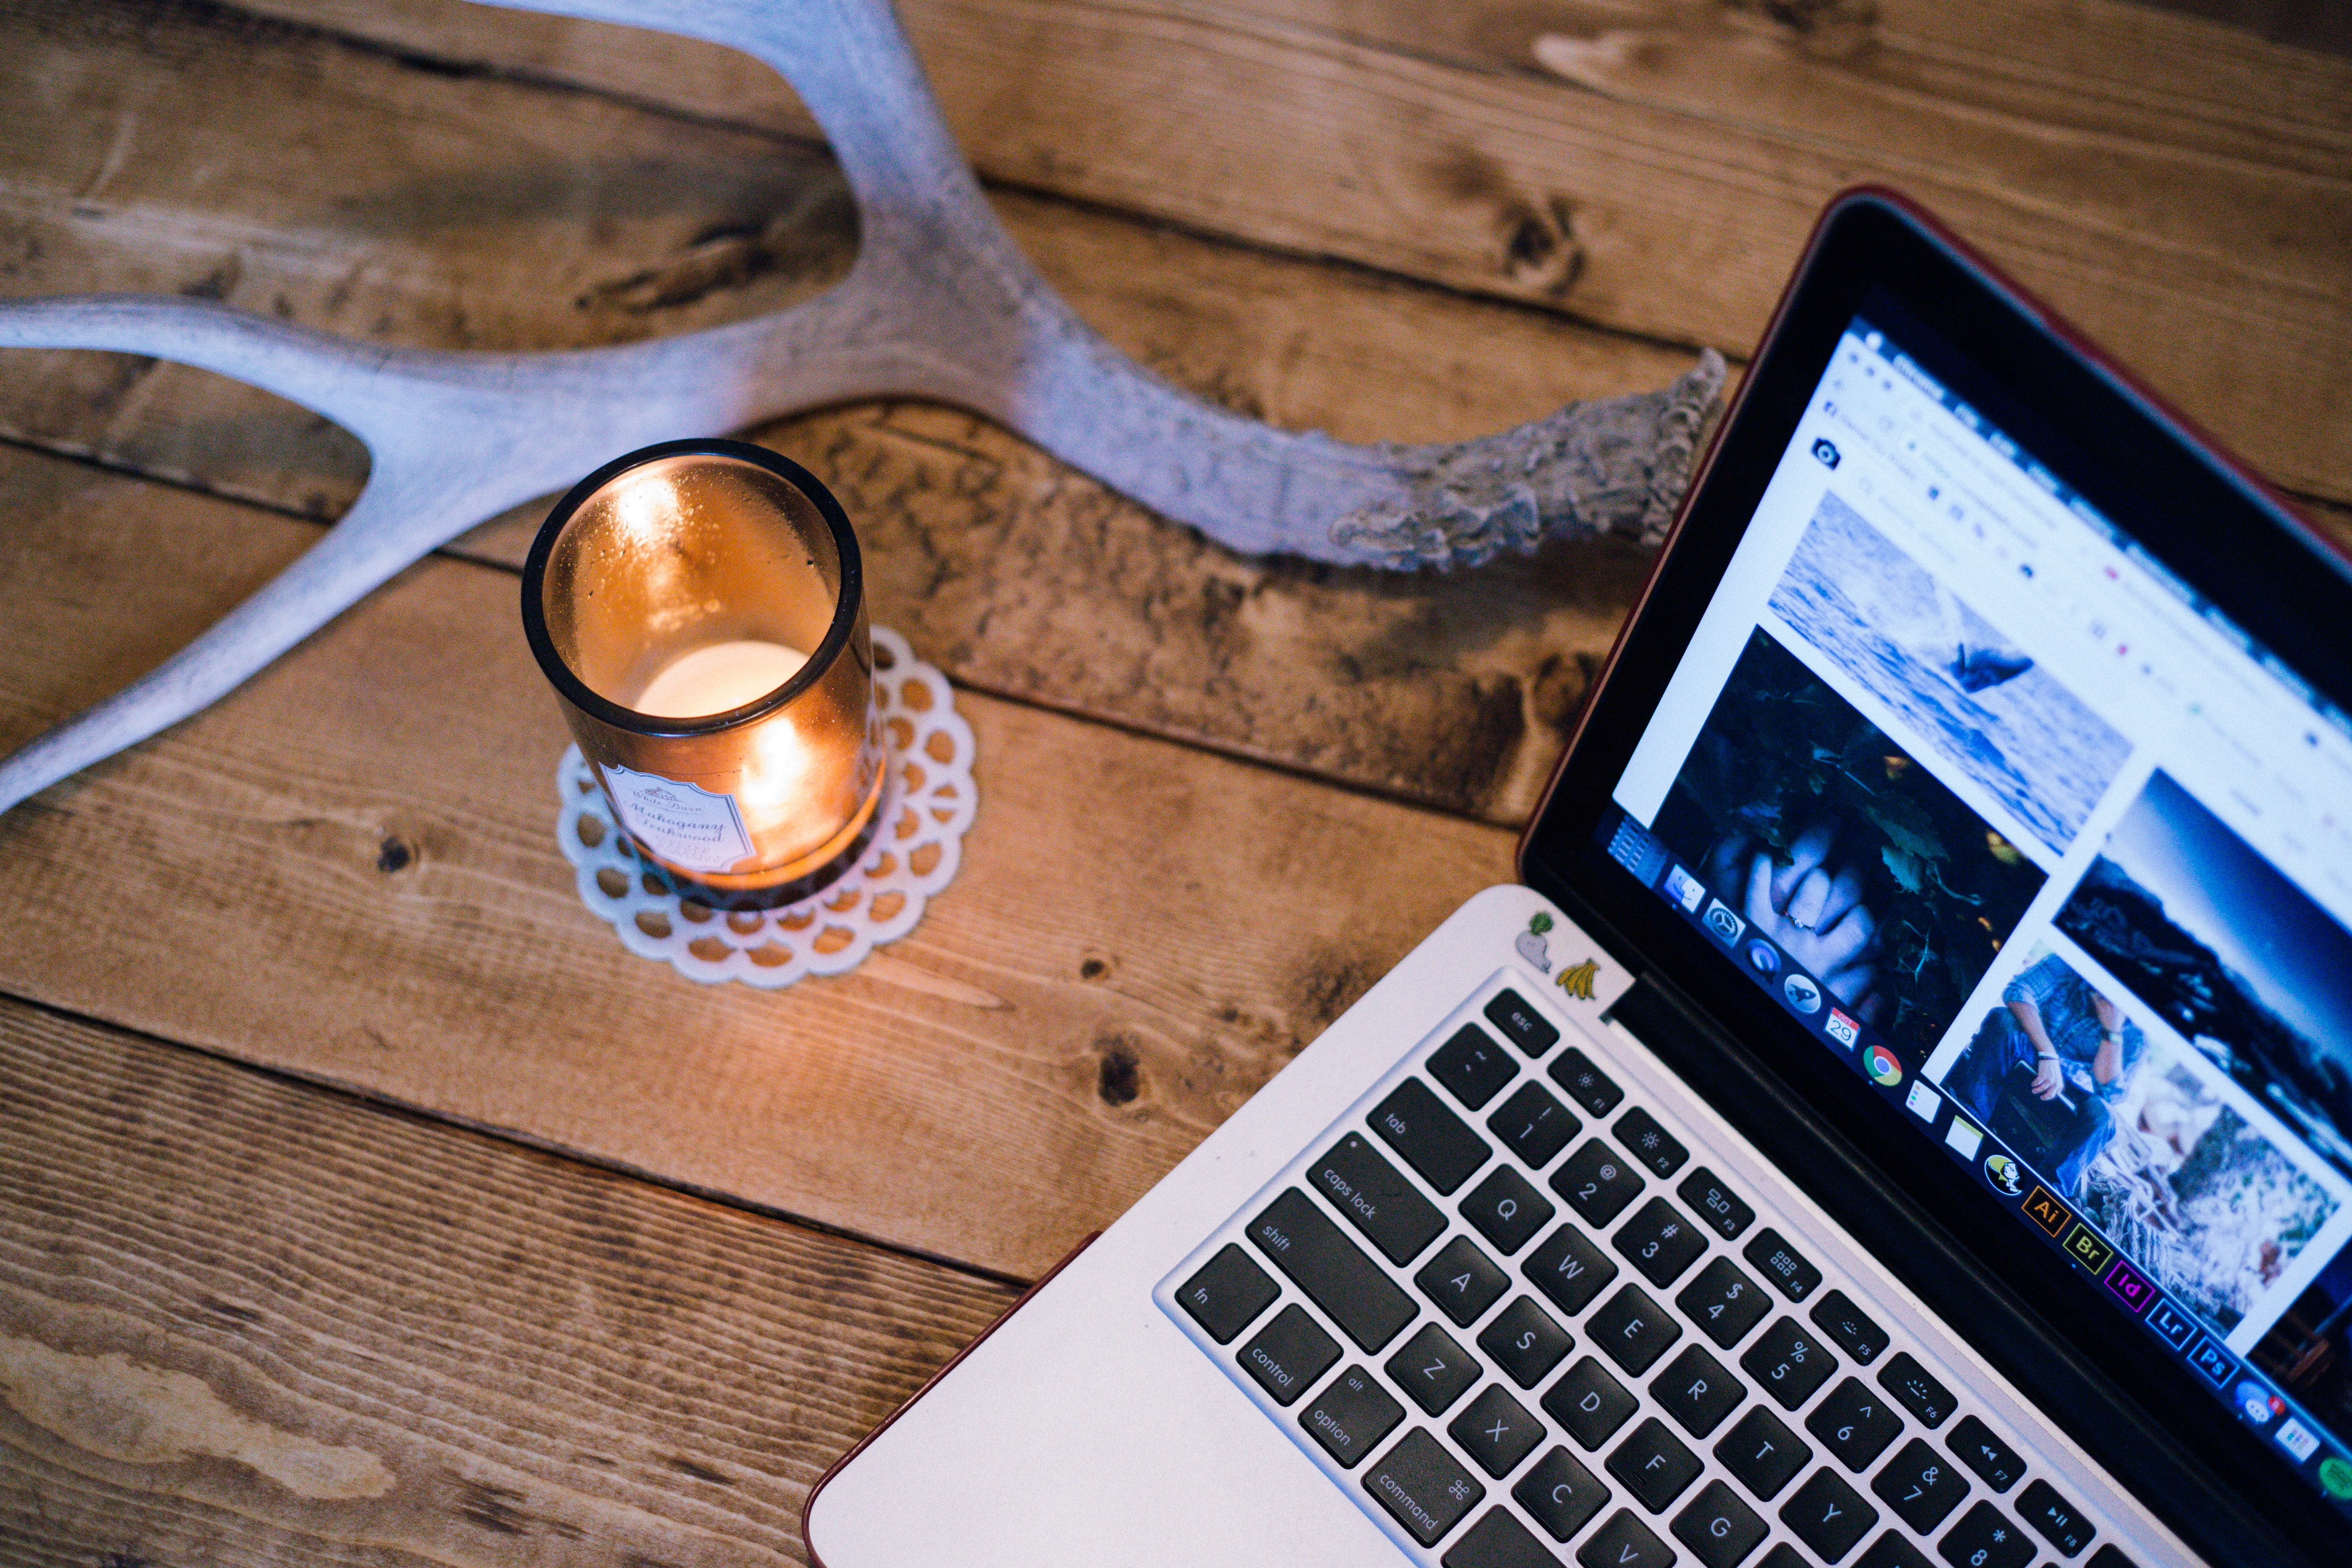 A lit candle and an antler on a table next to a laptop